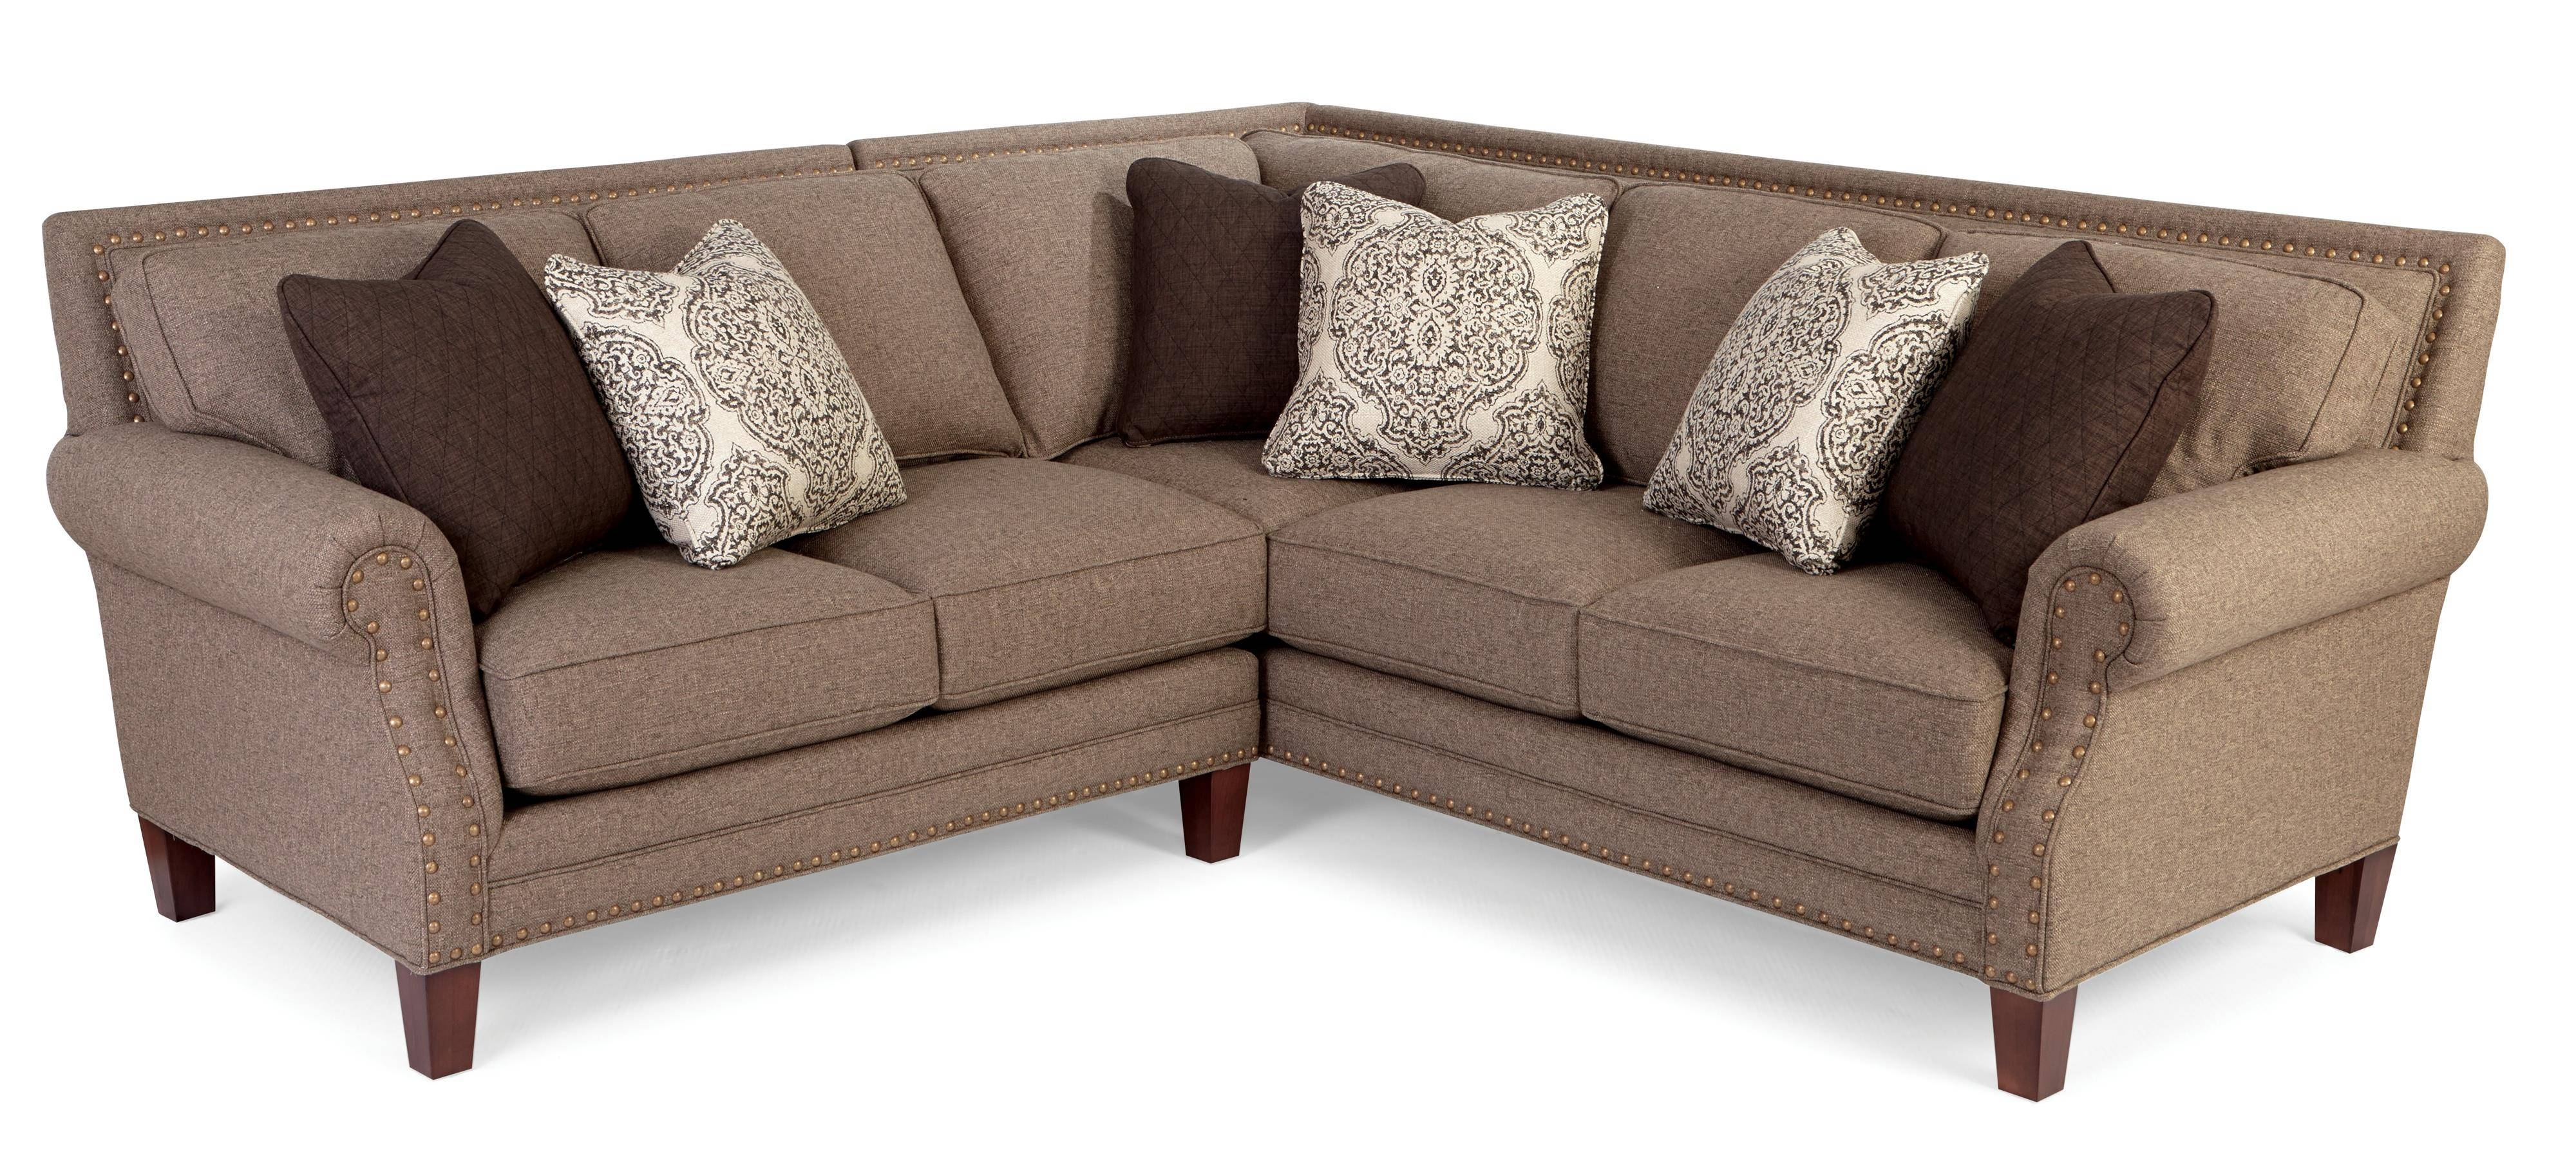 Craftmaster 747 Two Piece Sectional Sofa With Rolled Arms And within Craftmaster Sectional Sofa (Image 5 of 30)